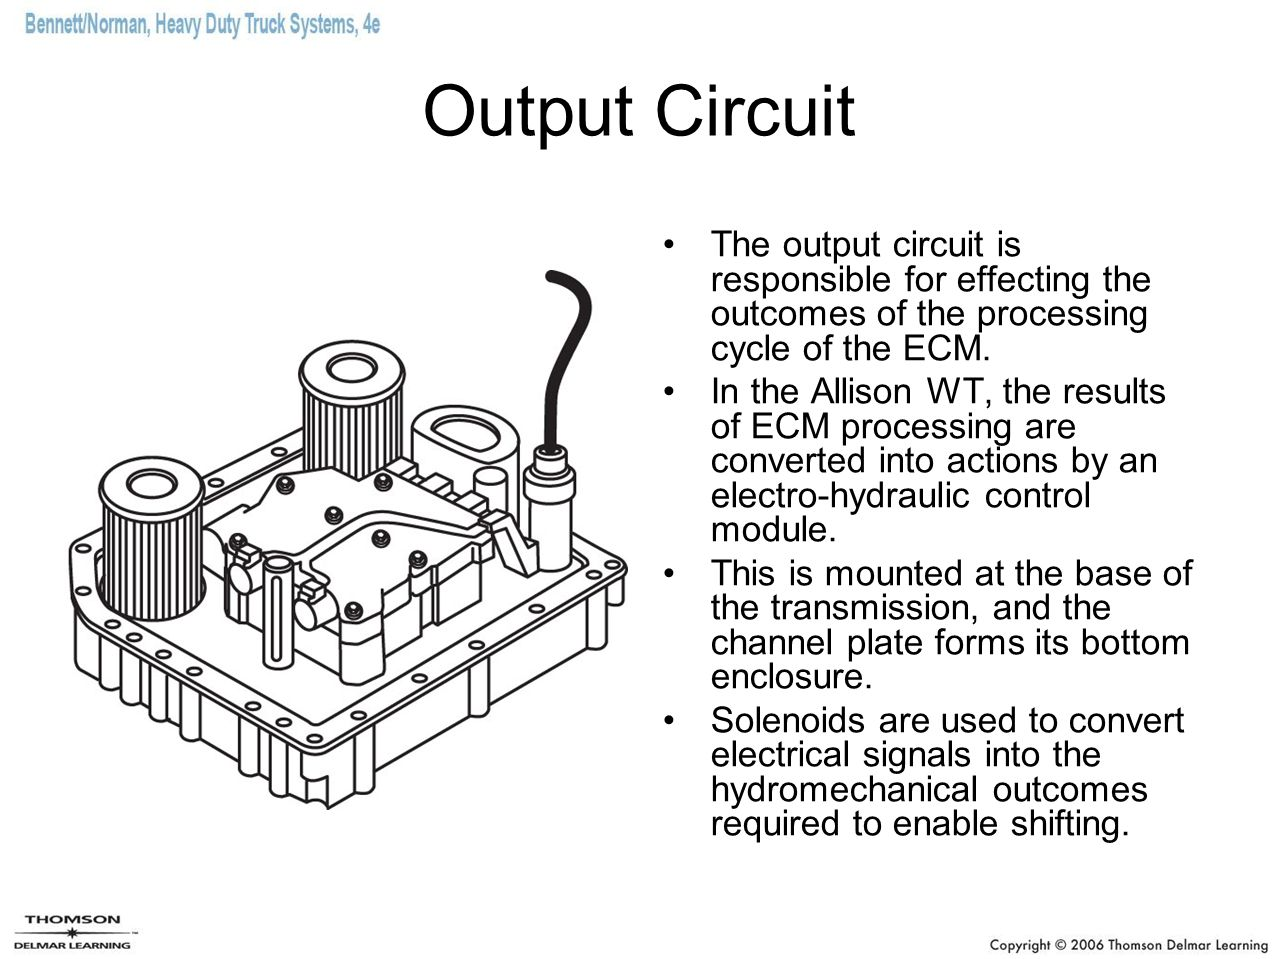 Allison Transmission Ecu Wiring Diagram Ruud Single Package Air Circuit The Output Is Responsible For Effecting Outcomes Of Processing Cycle Ecm 5773425